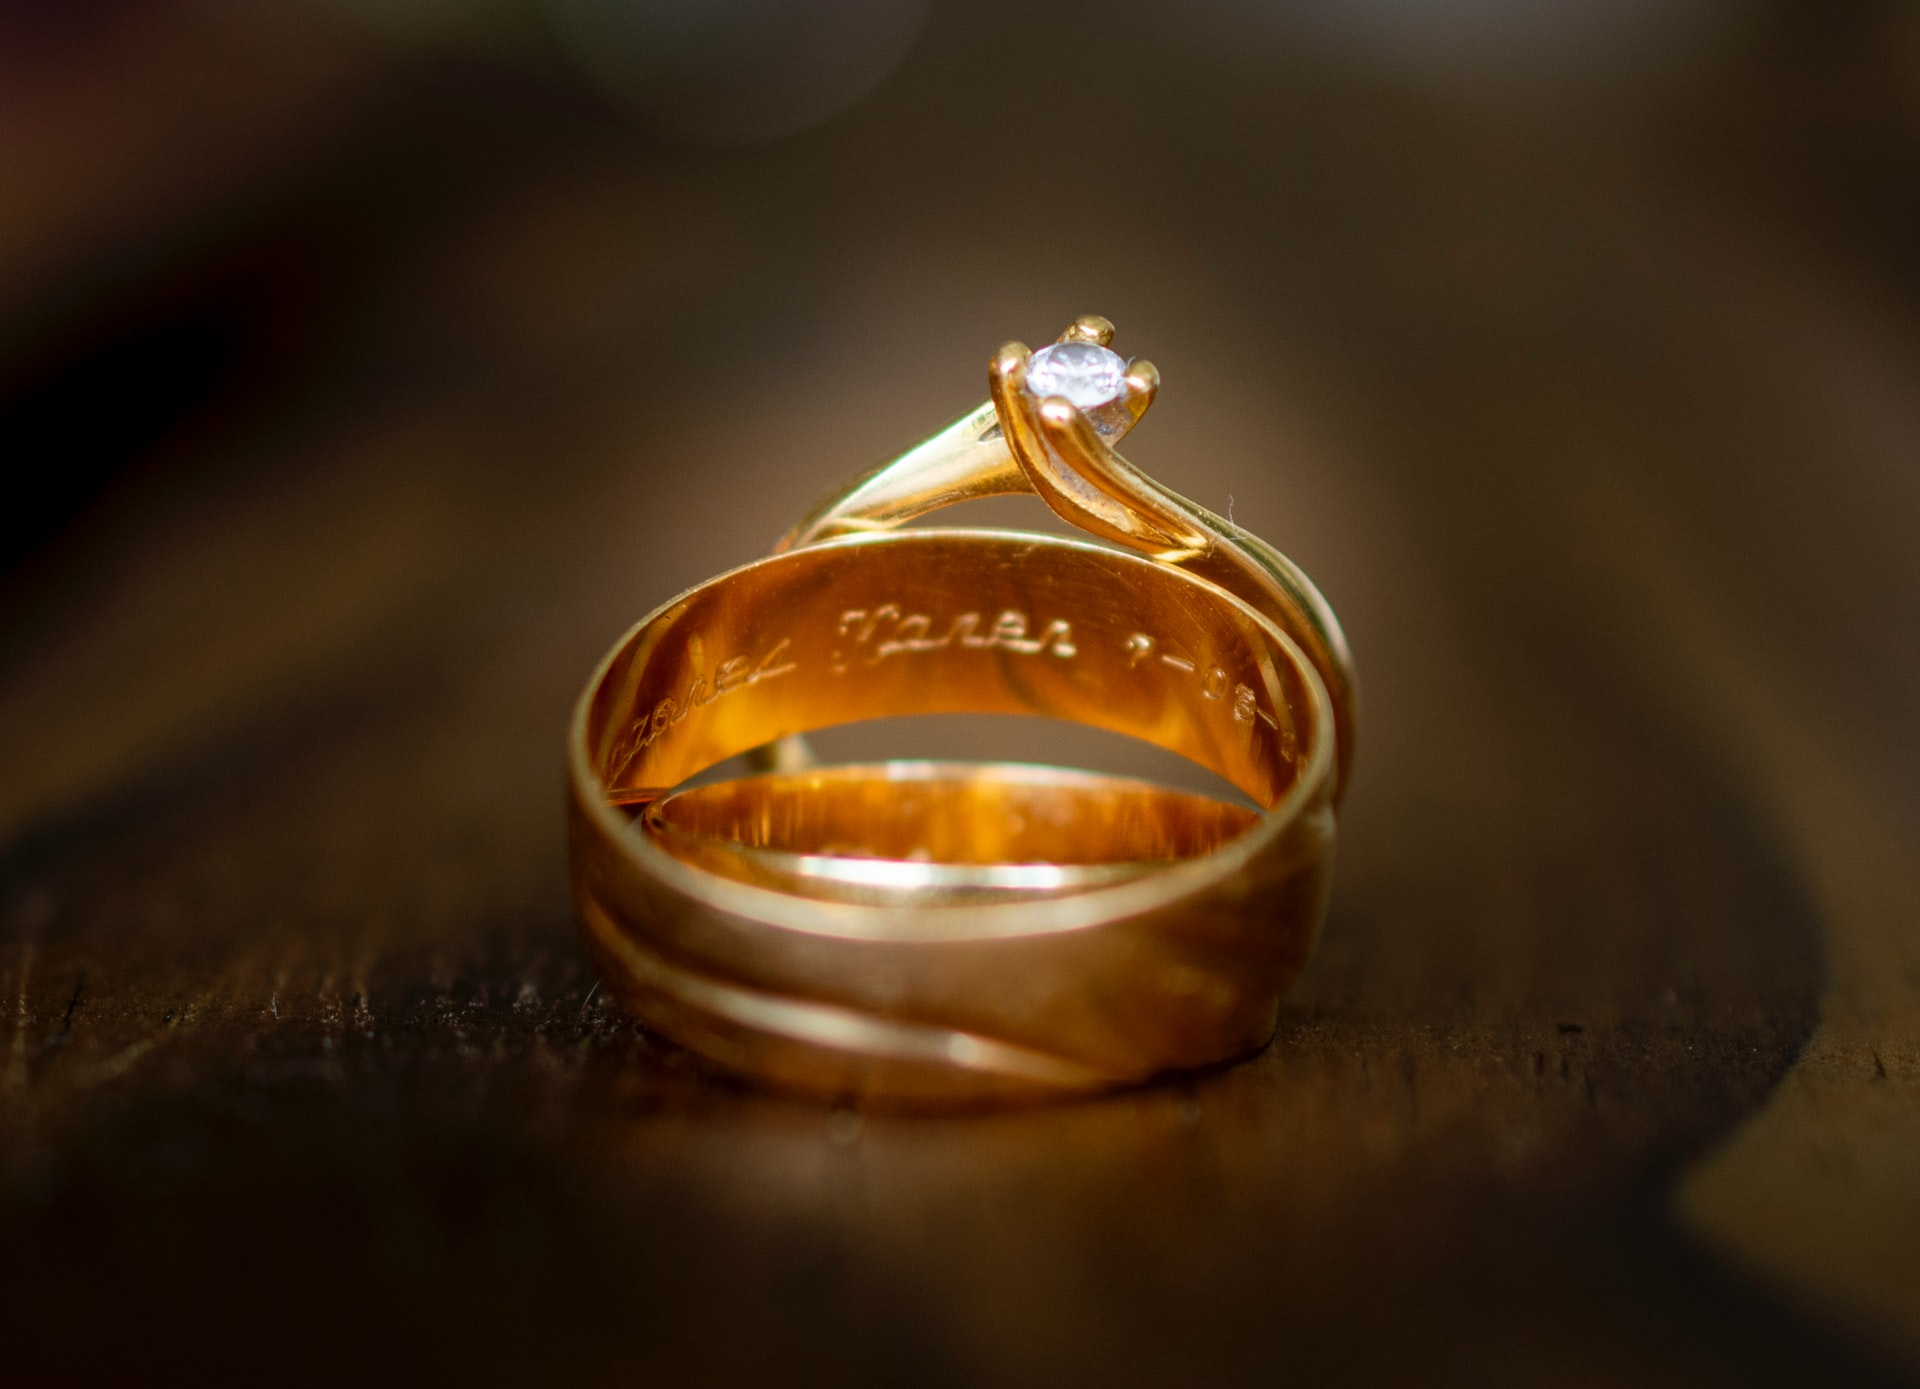 Golden ring with inscription on inside and diamond embedded in it